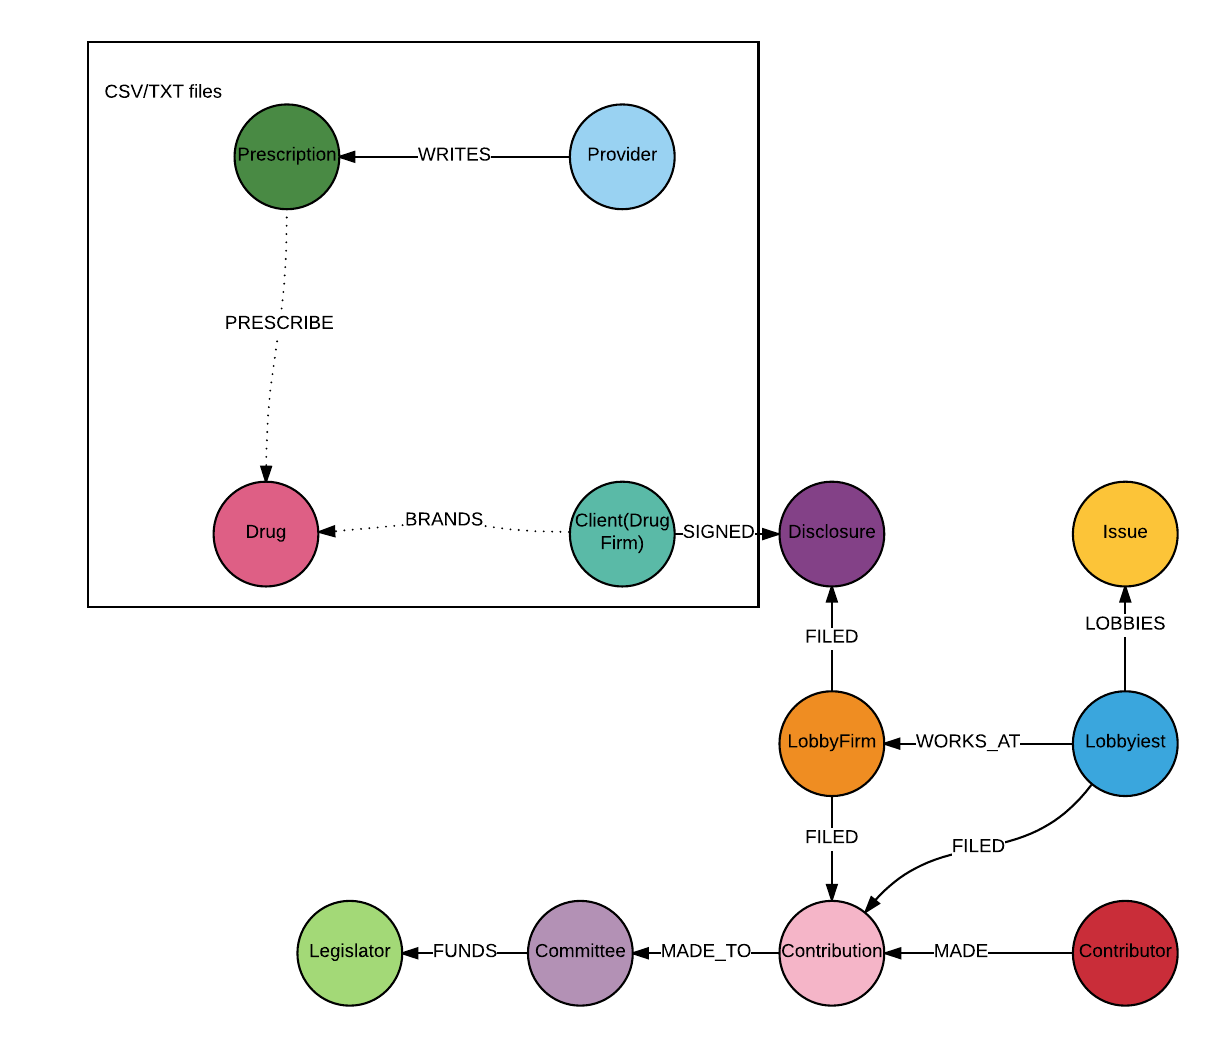 A graph data model of the healthcare industry